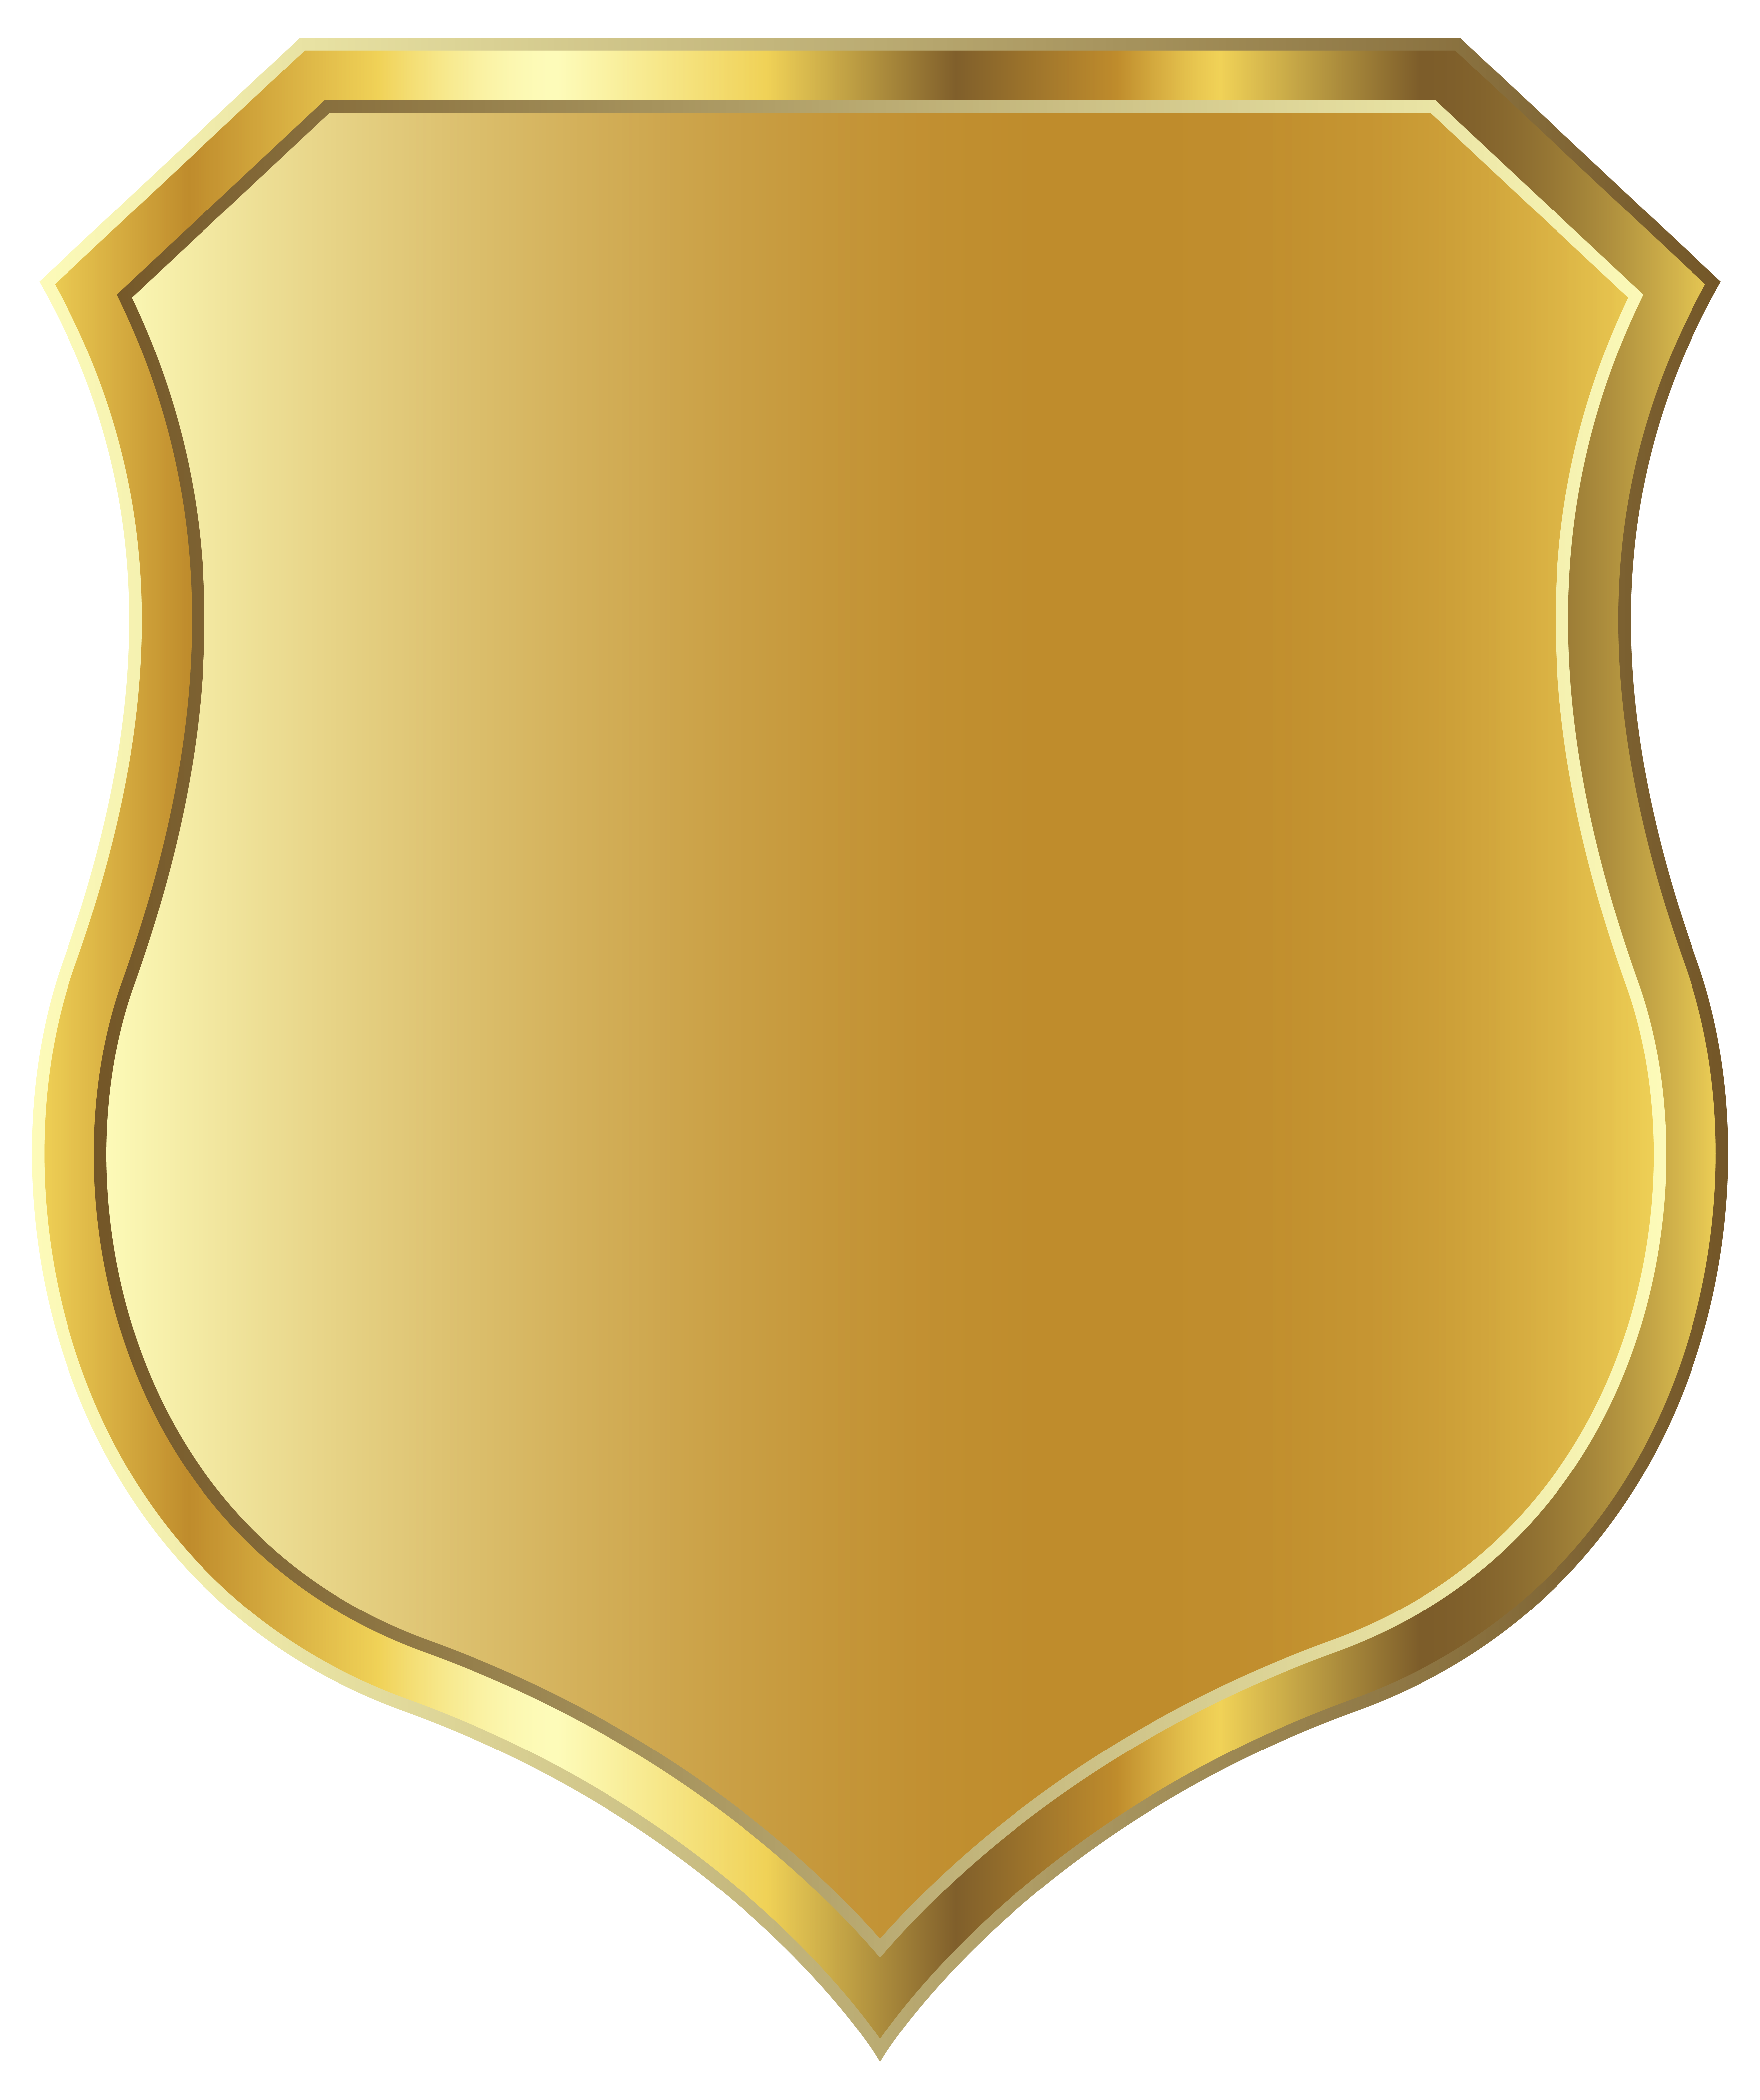 Clipart shield frame. Pin by jasgeet on